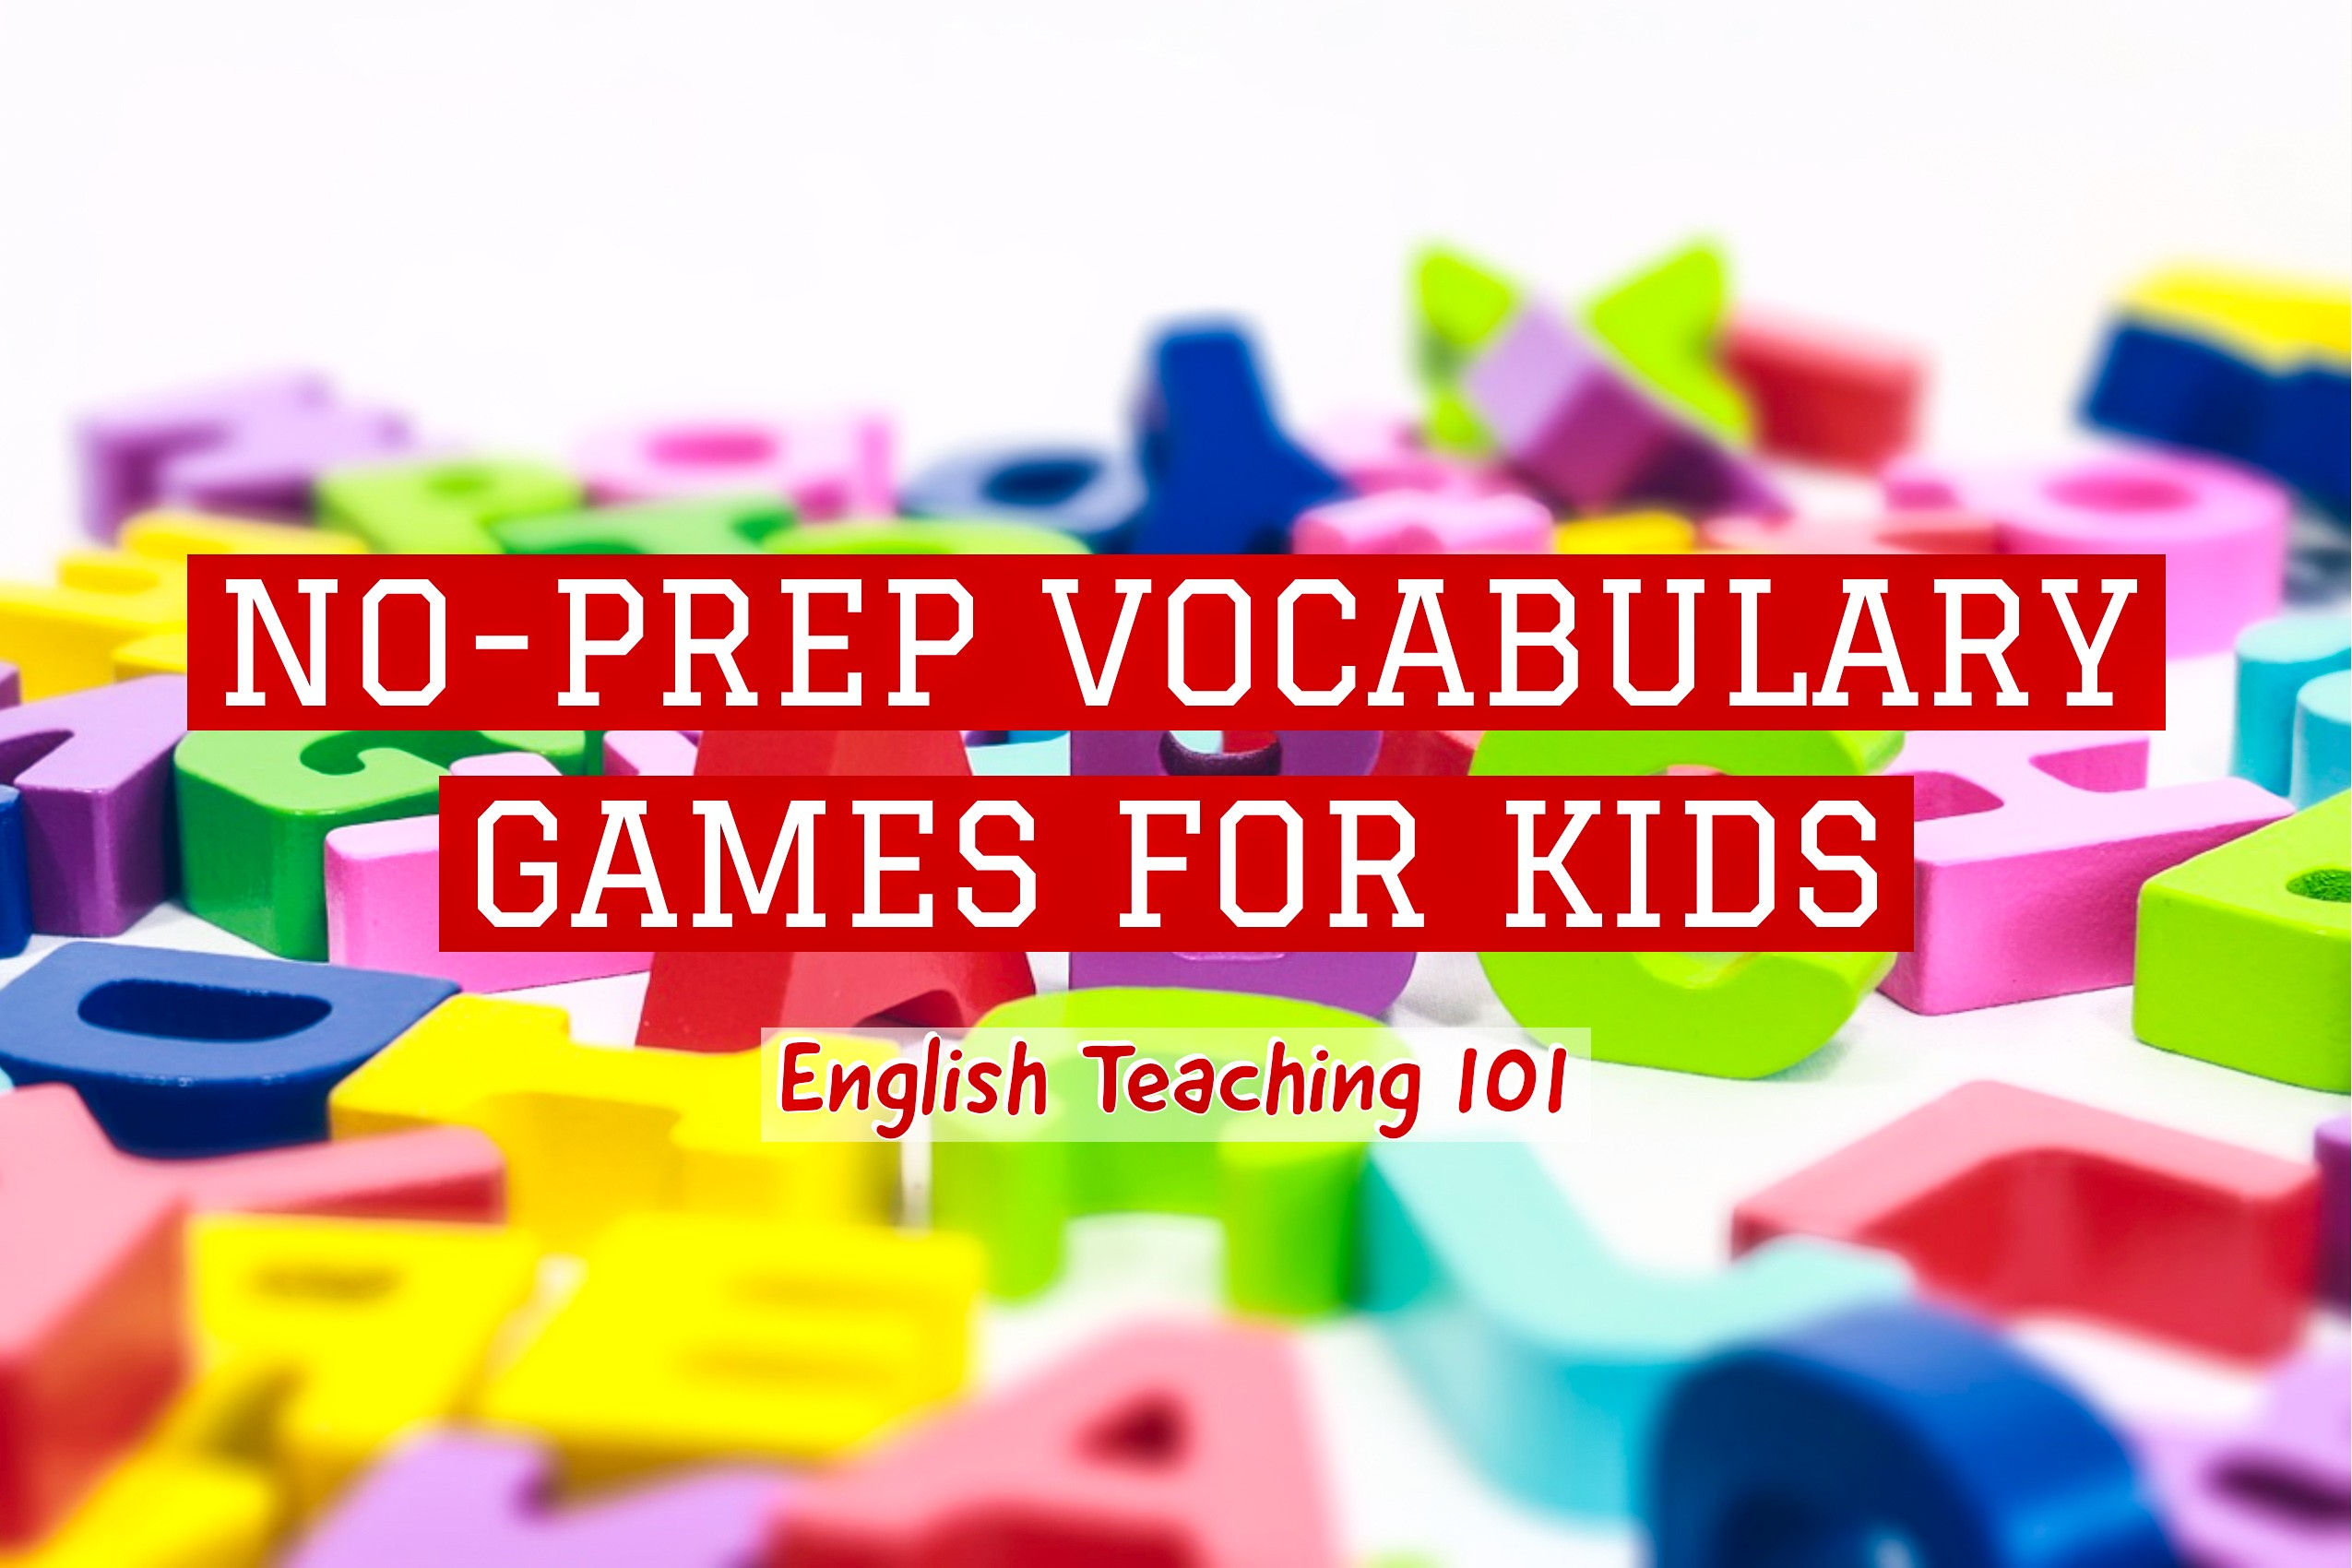 no-prep vocabulary games for kids